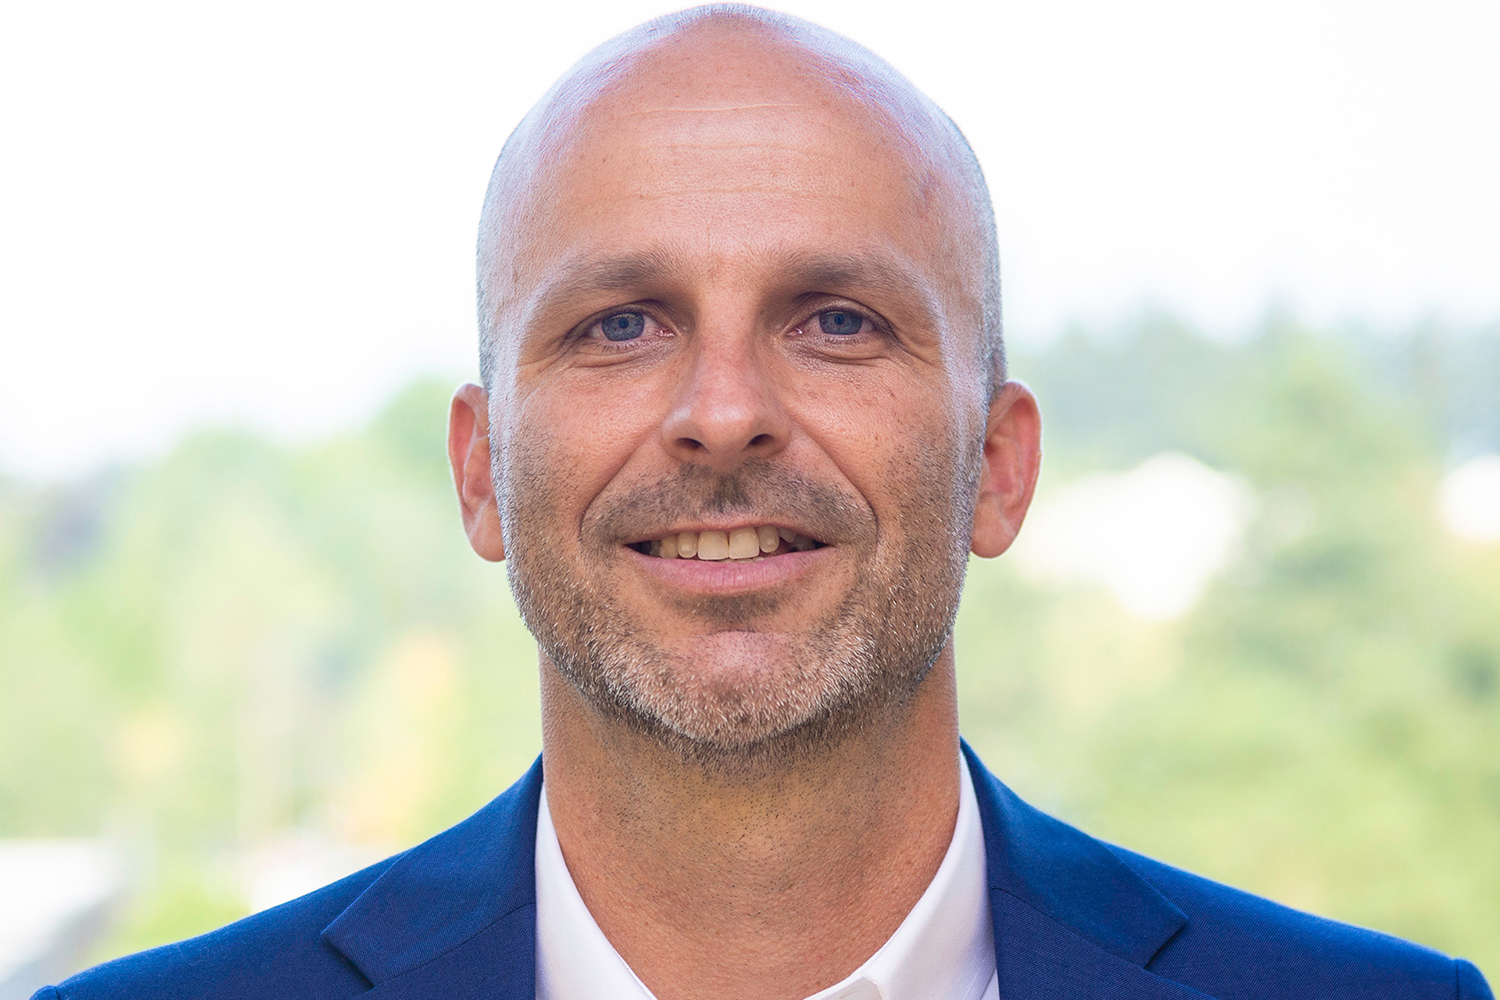 Kyle King Appointed President of Adventist Health Portland